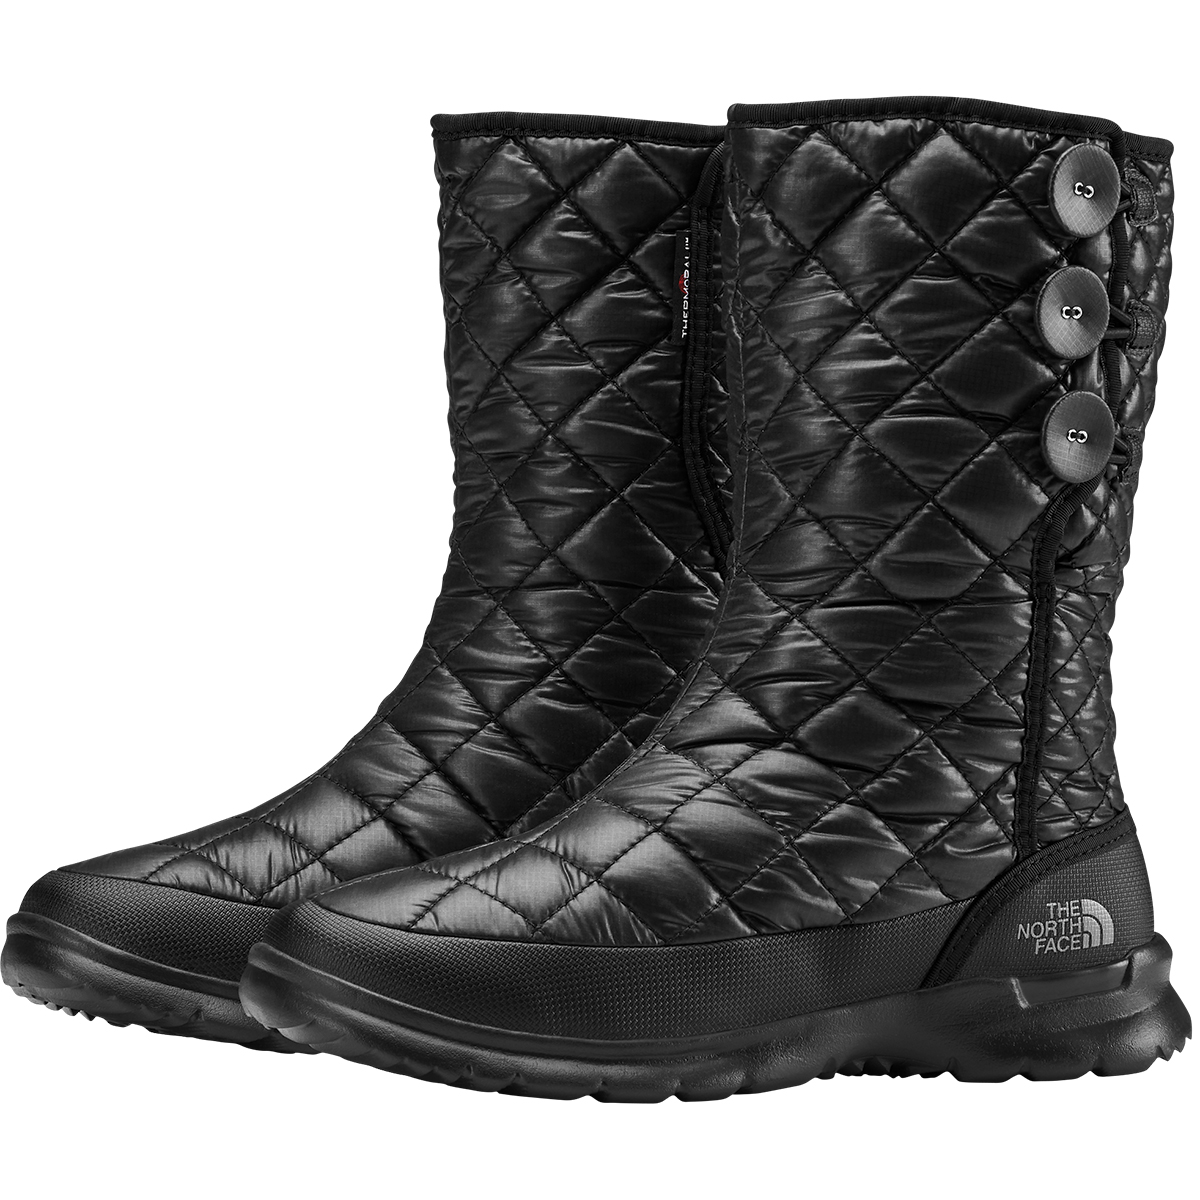 The North Face Women's Thermoball Eco Button Up Boot - Black, 10